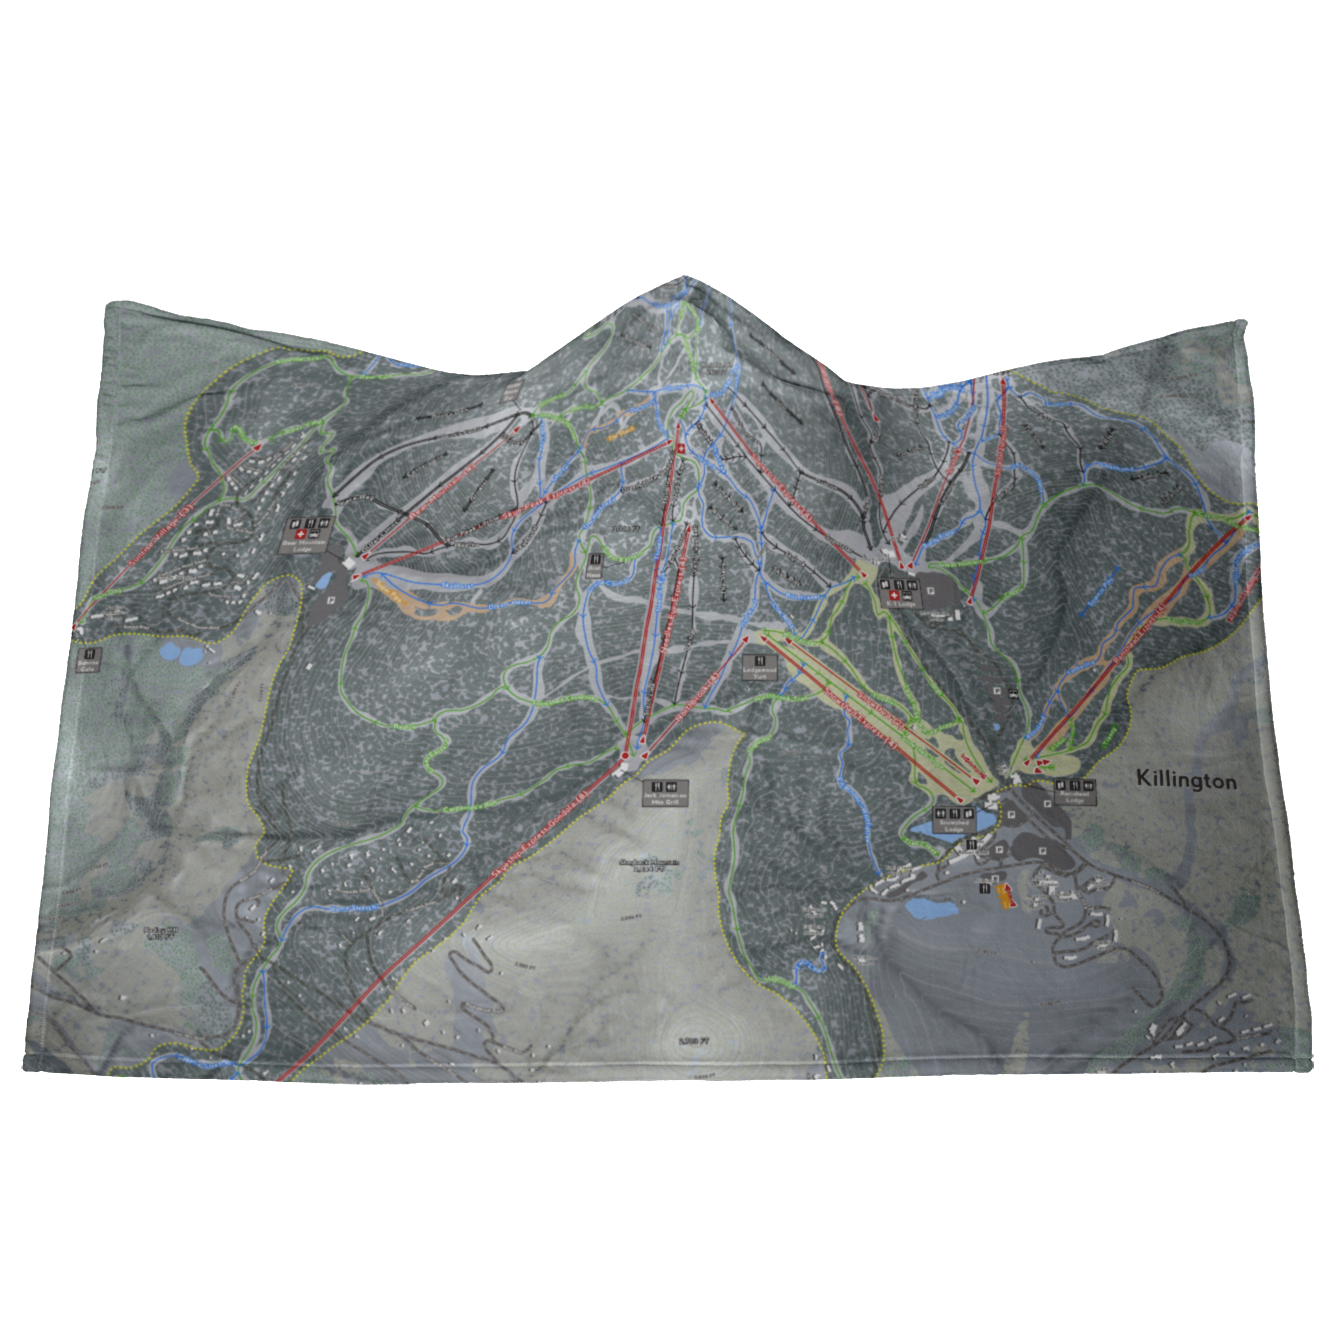 Killington, Vermont Ski Resort Map - Hooded Blanket